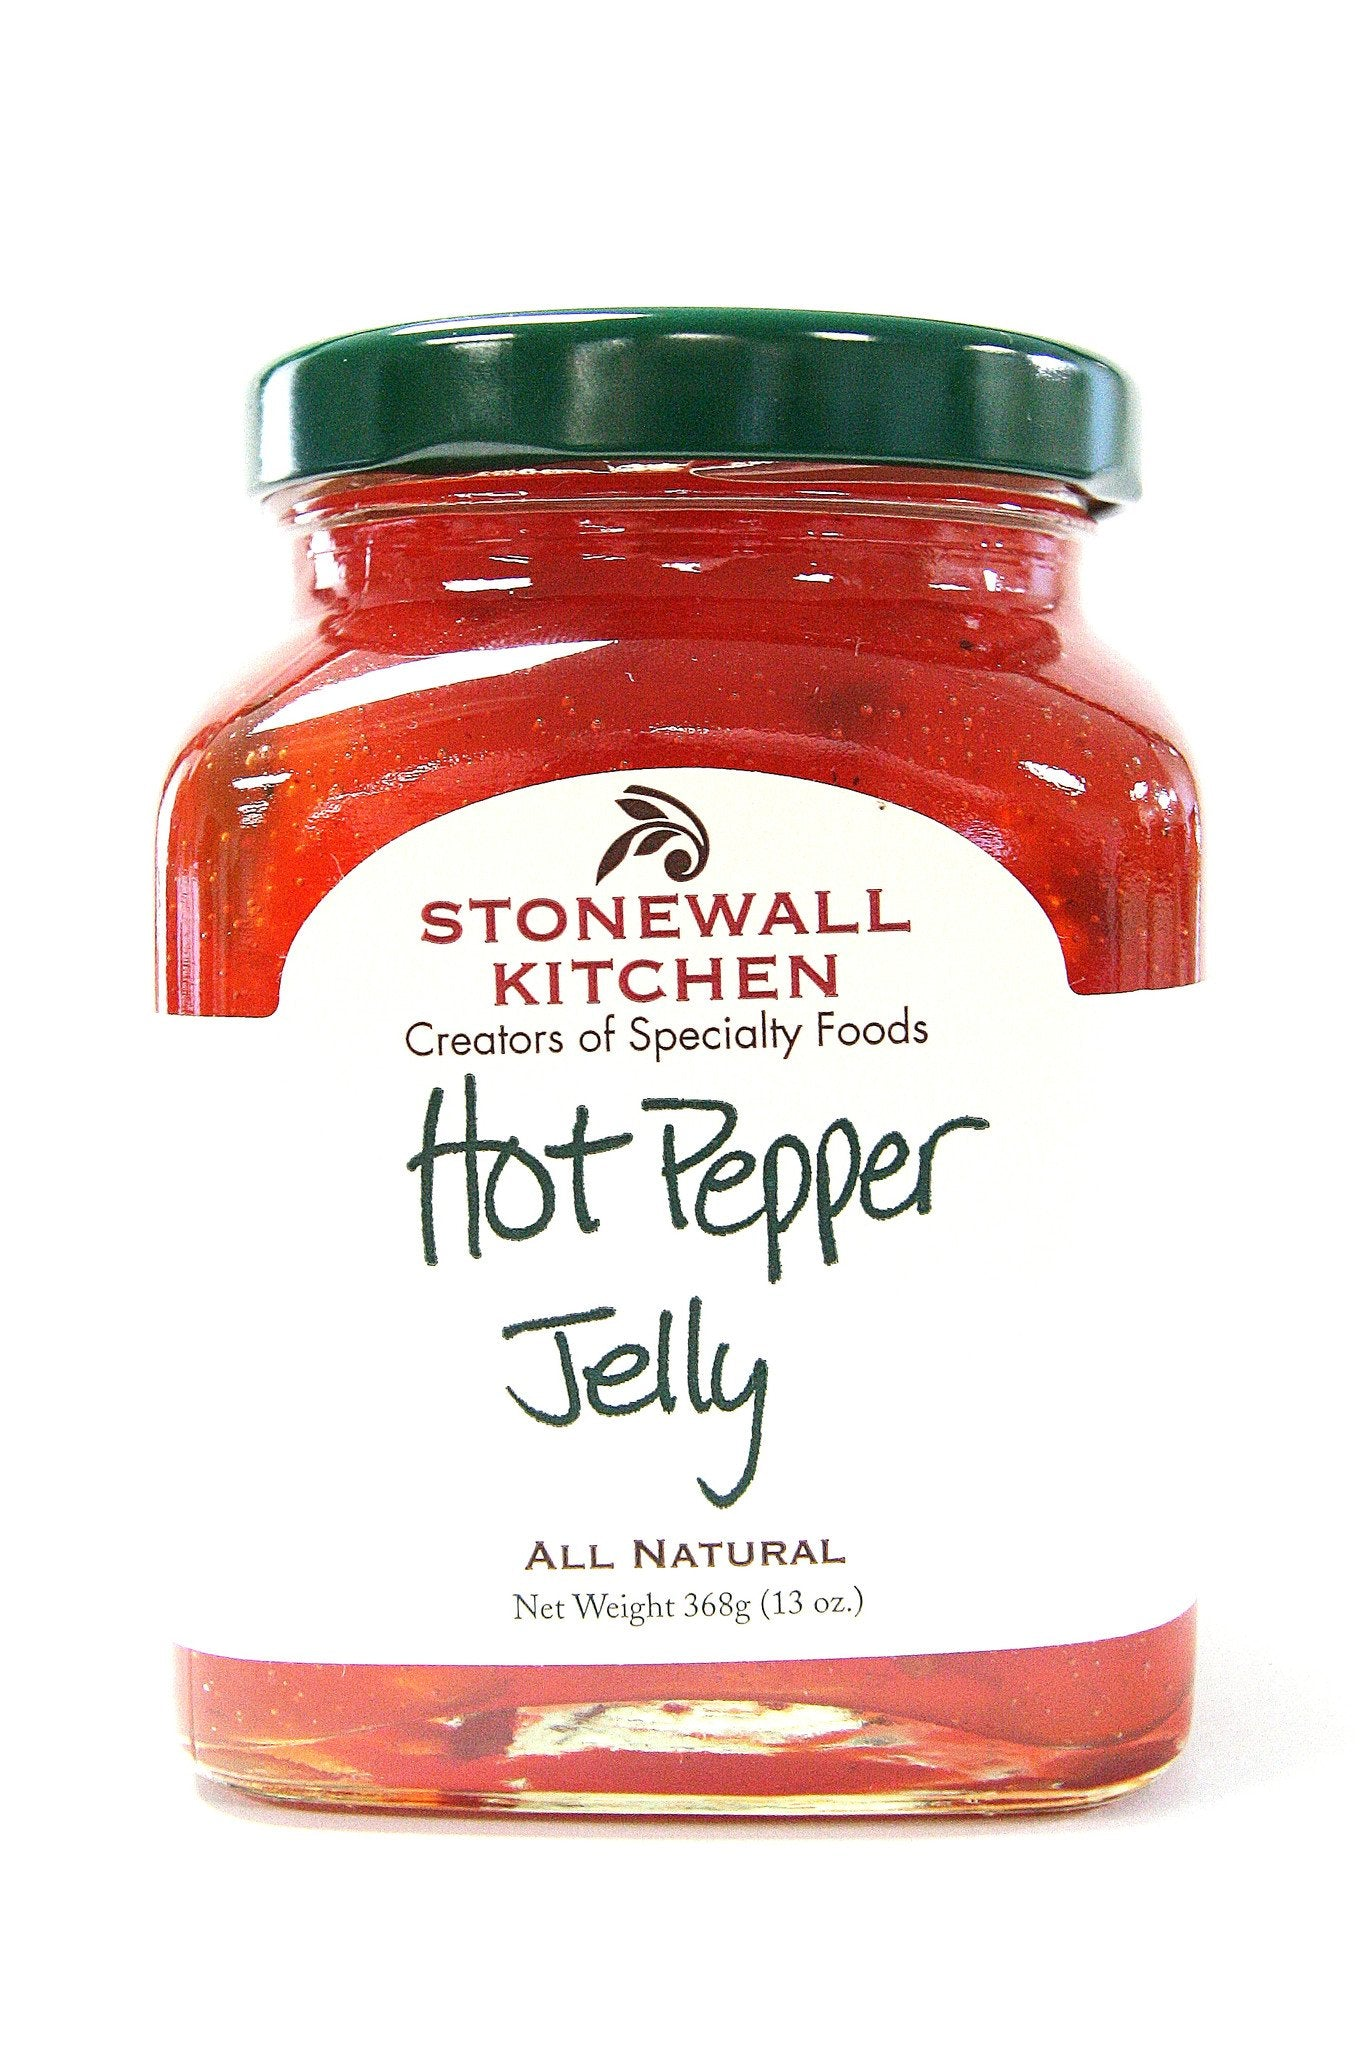 Stonewall Kitchen - Hot Pepper Jelly 13 oz.